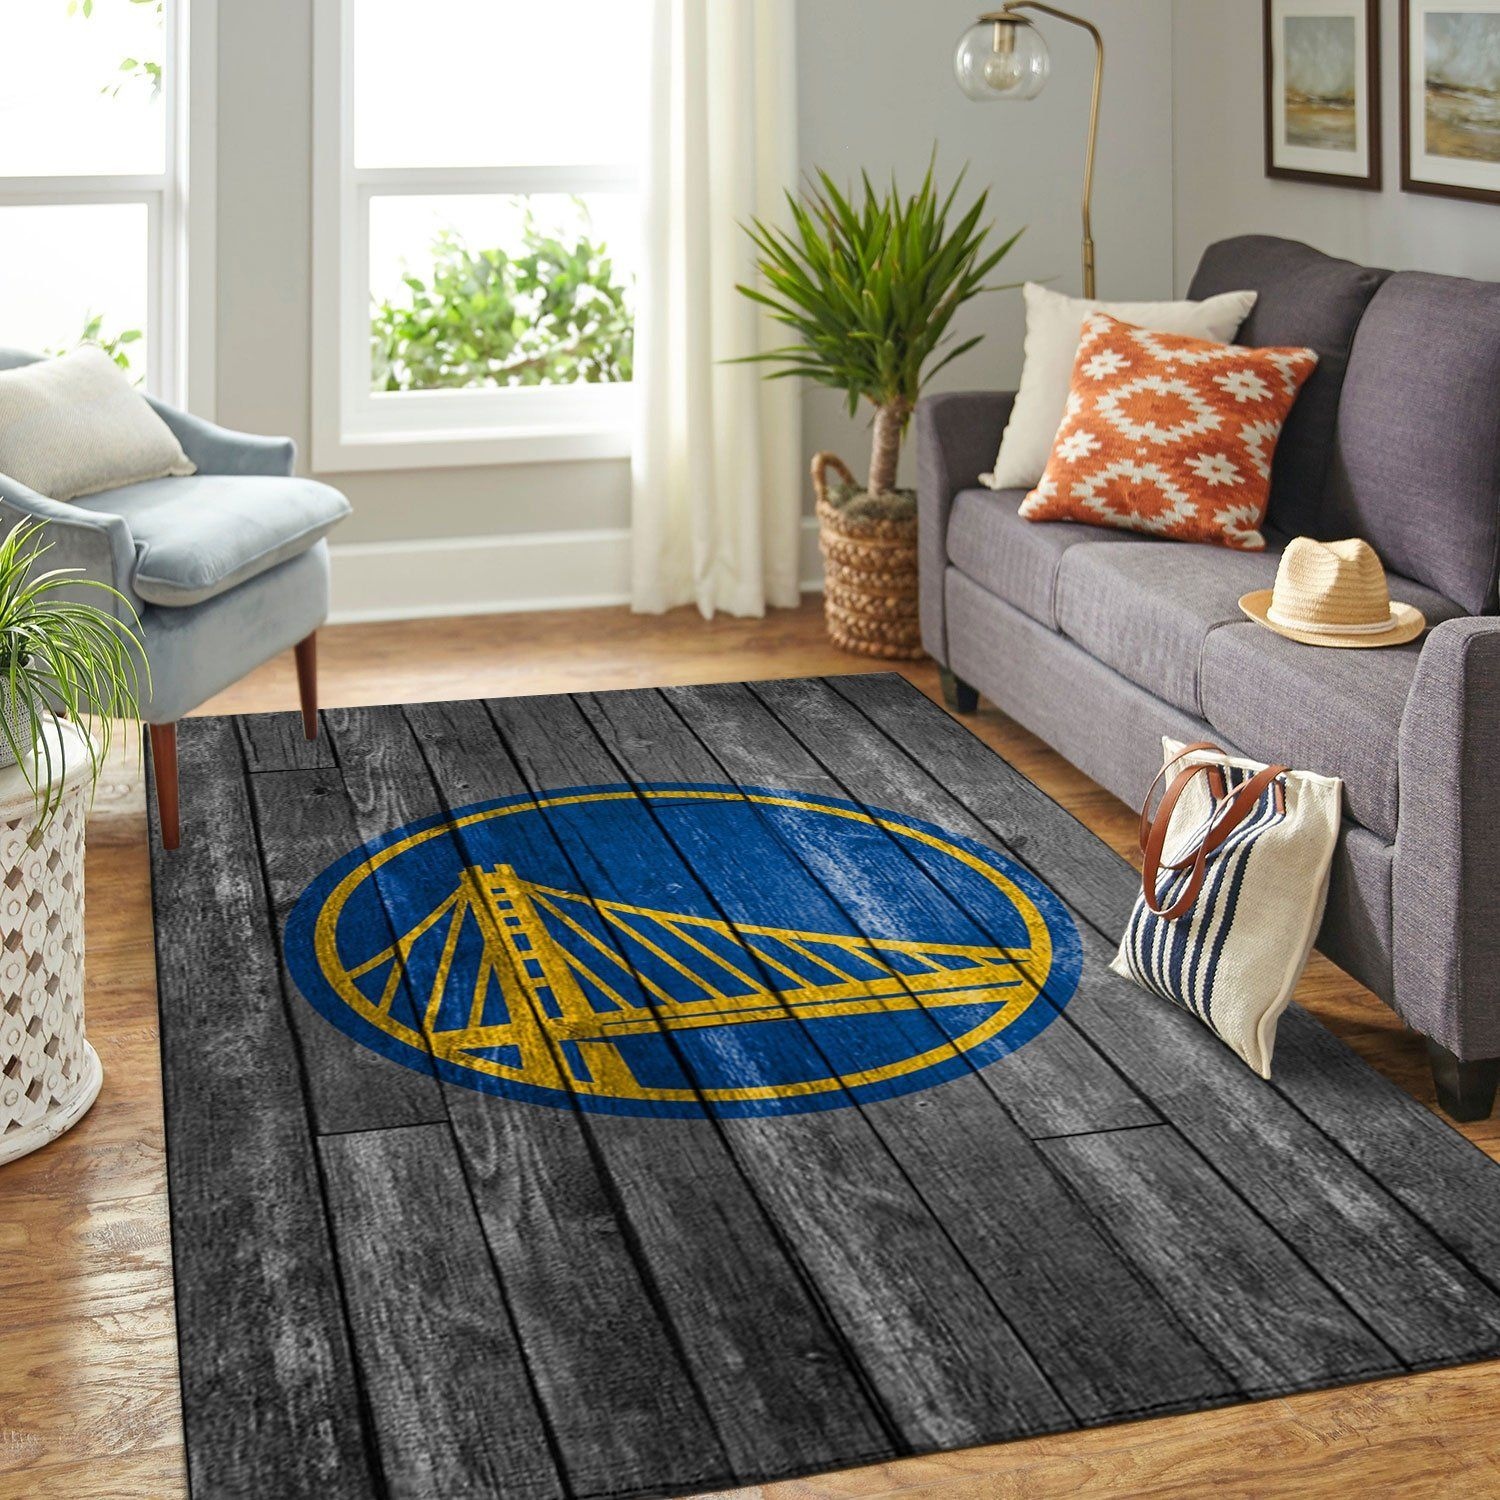 Amazon Golden State Warriors Living Room Area No3089 Rug